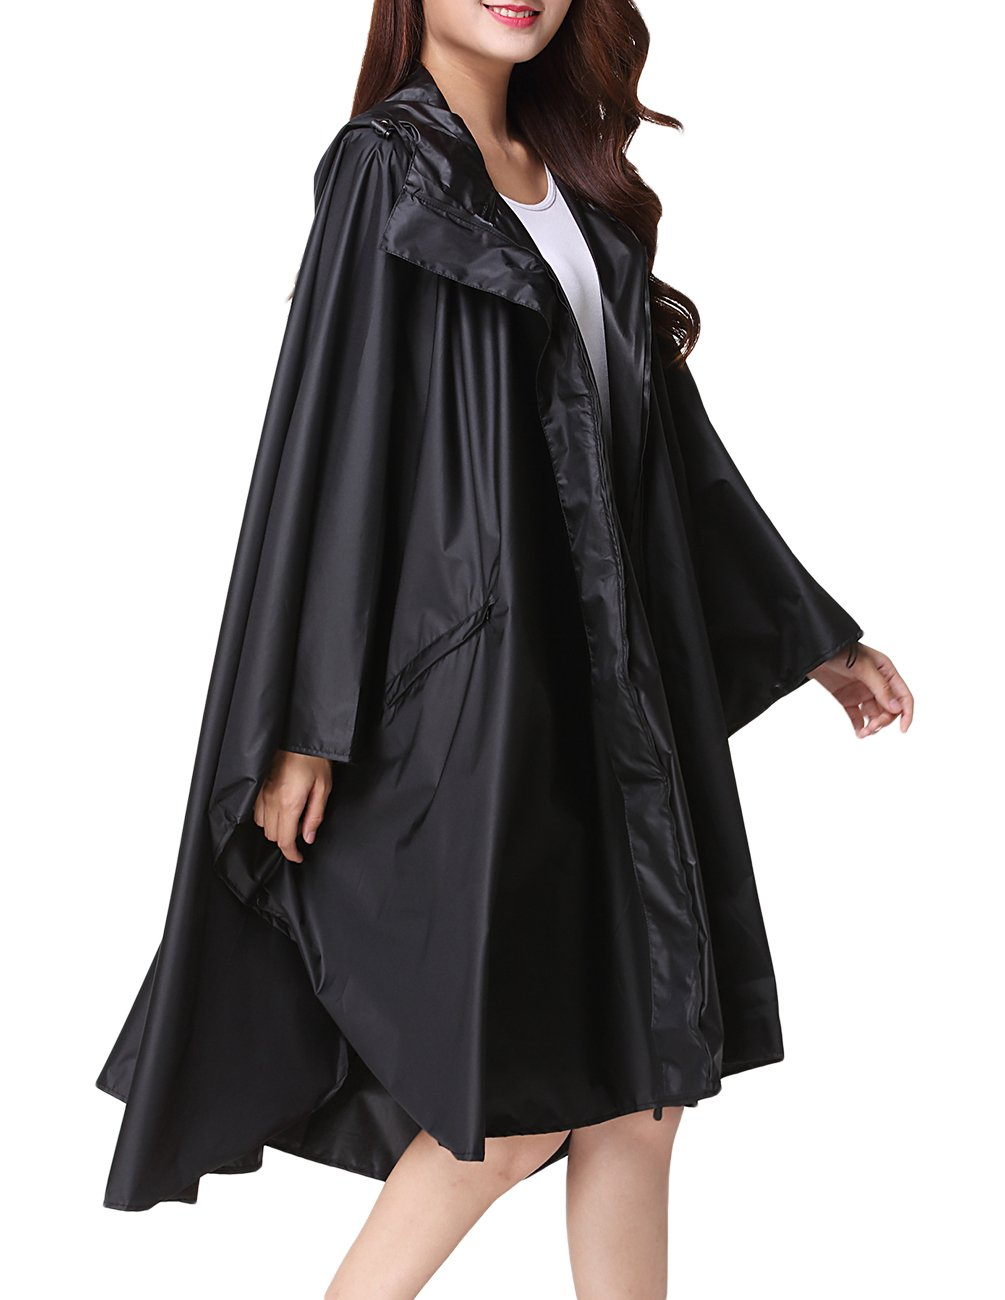 Buauty Unisex Rain Poncho Cape Riancoats Cloak Lightweight Waterproof Breathable